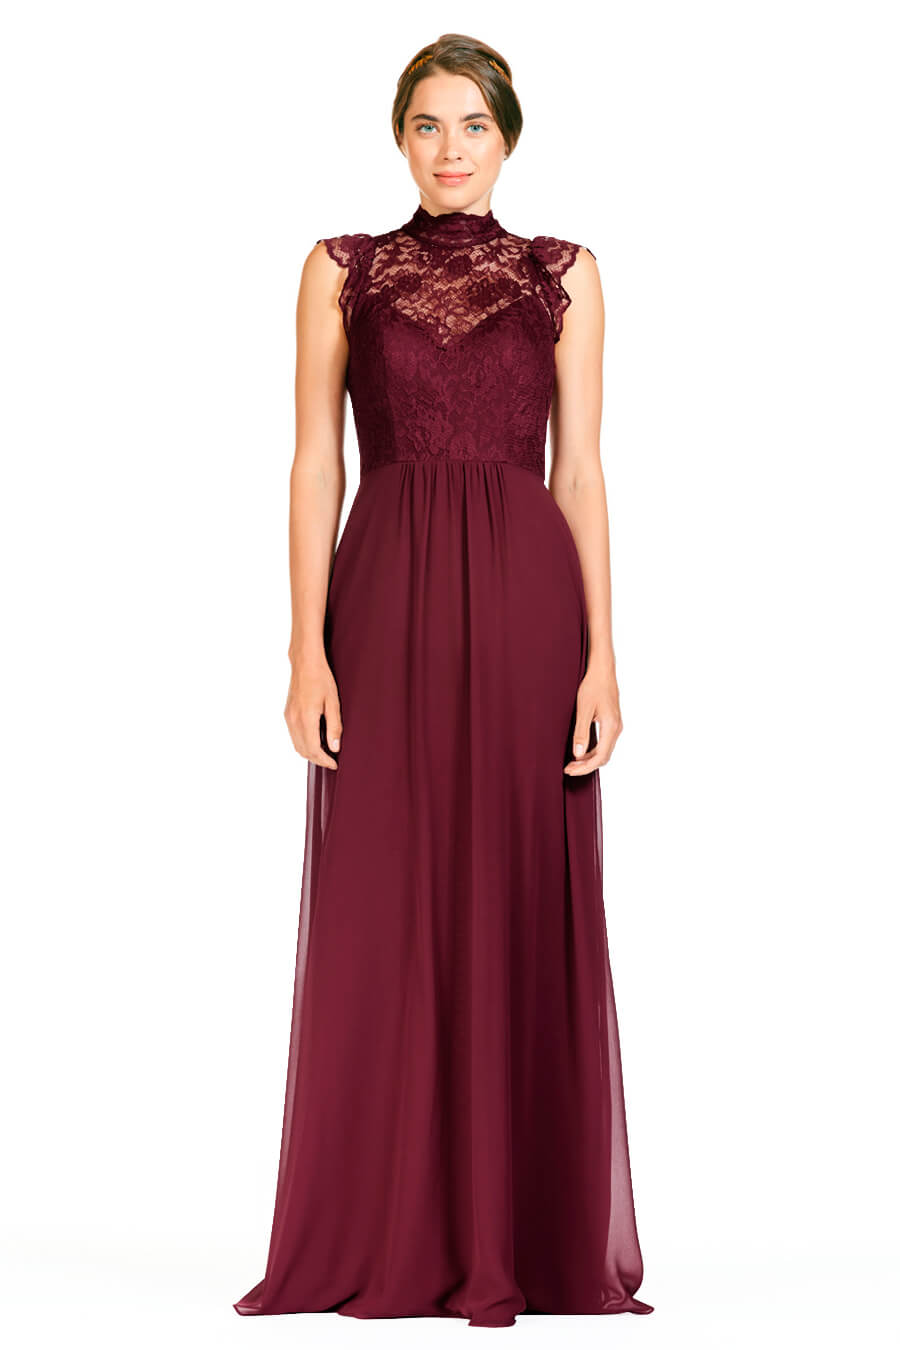 STYLE: 1800 (available short 1800-s) | Bridesmaid Dresses, Evening ...